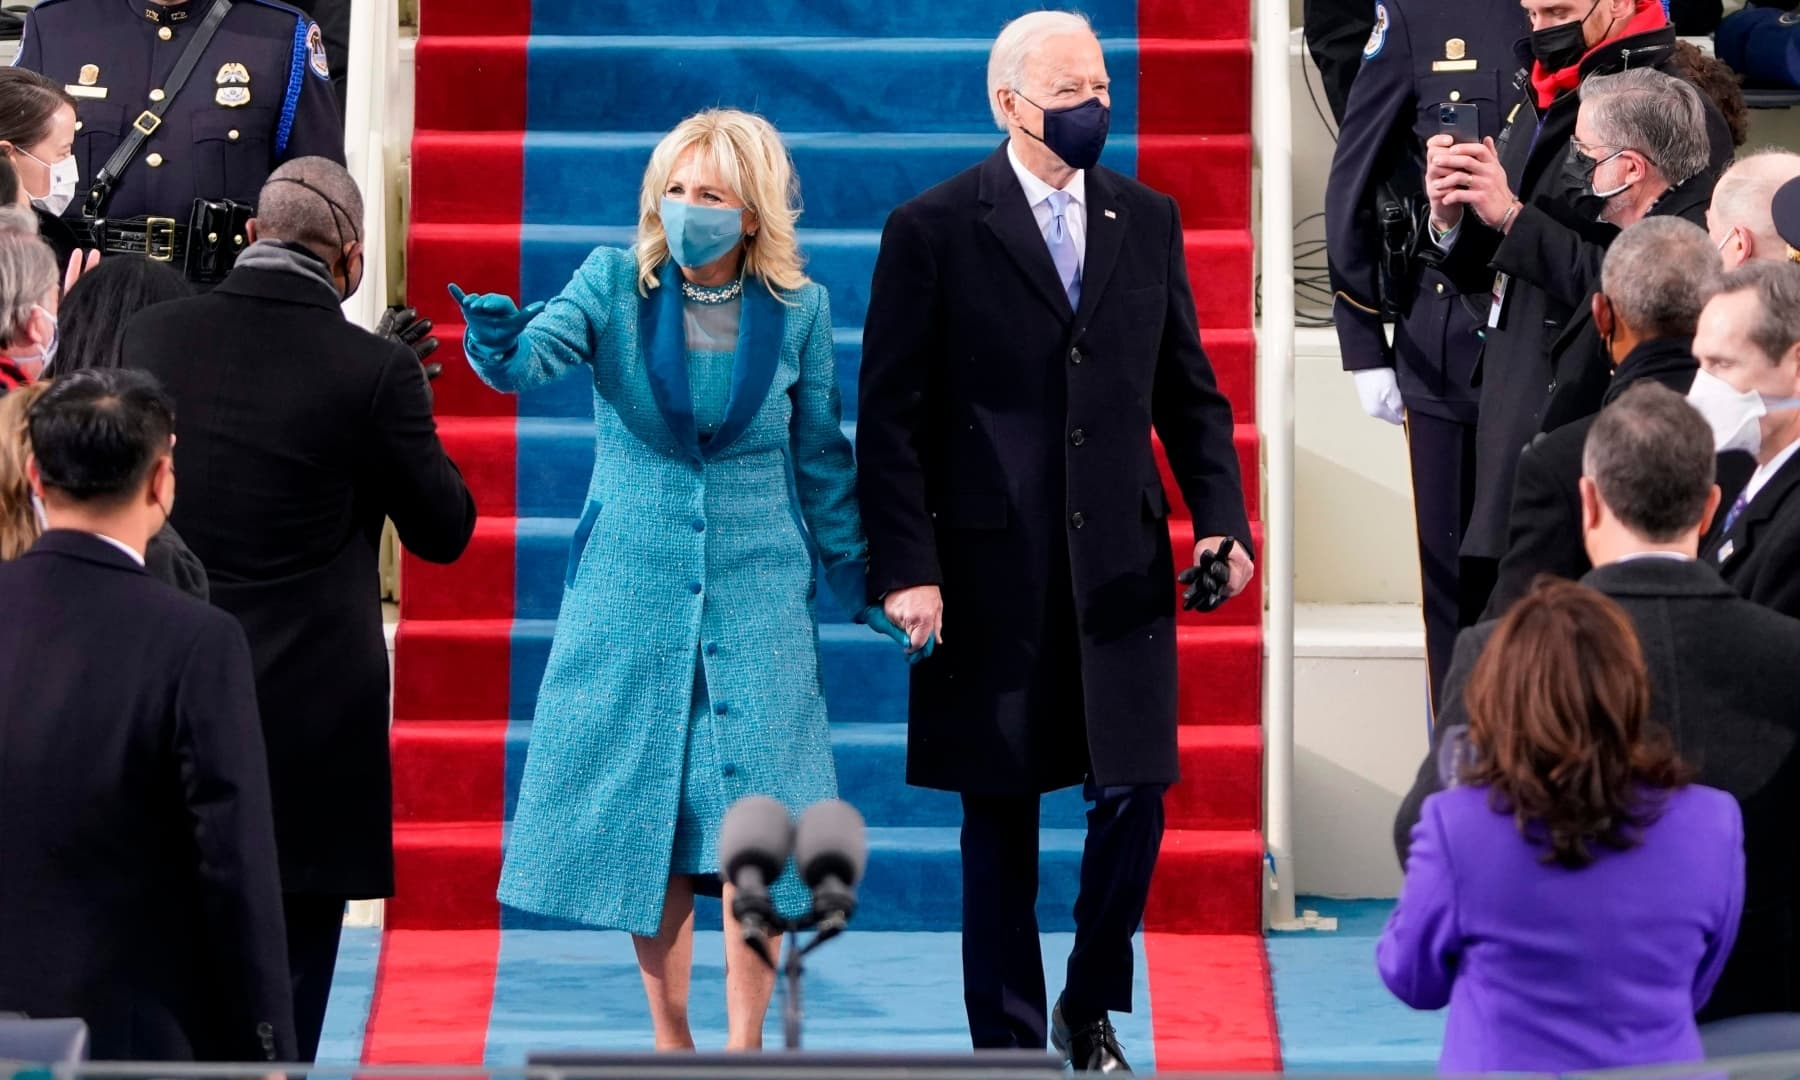 US President-elect Joe Biden flanked by wife Dr Jill Biden arriving for his inauguration as the 46th US President on January 20 at the US Capitol in Washington, DC. — AFP